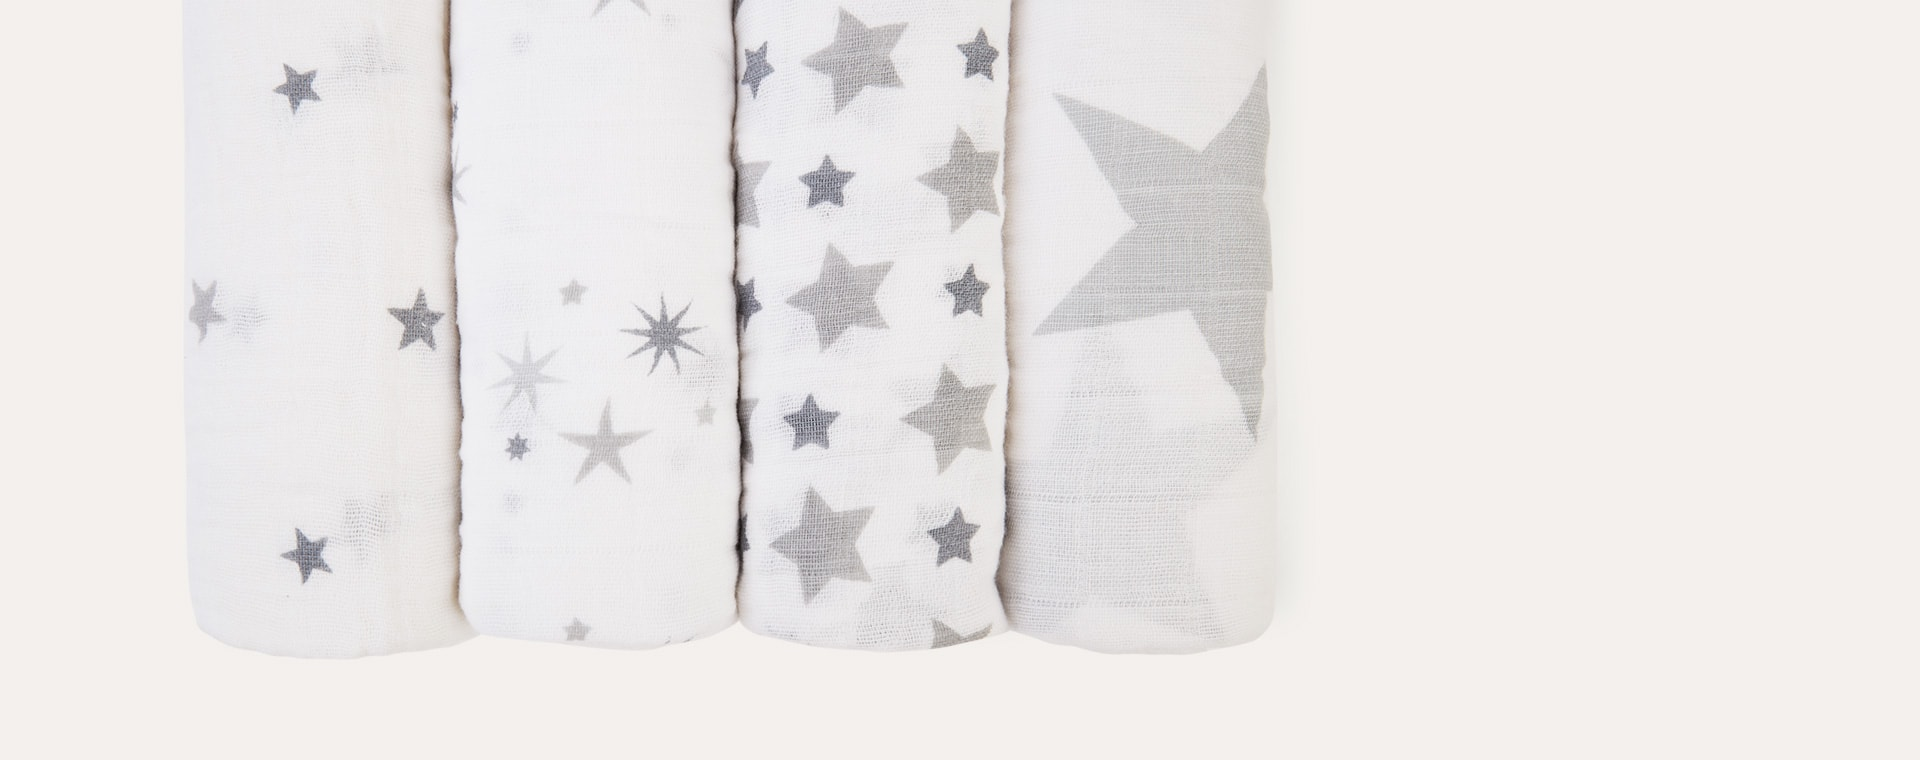 Twinkle aden + anais Classic Cotton Swaddle - 4 Pack